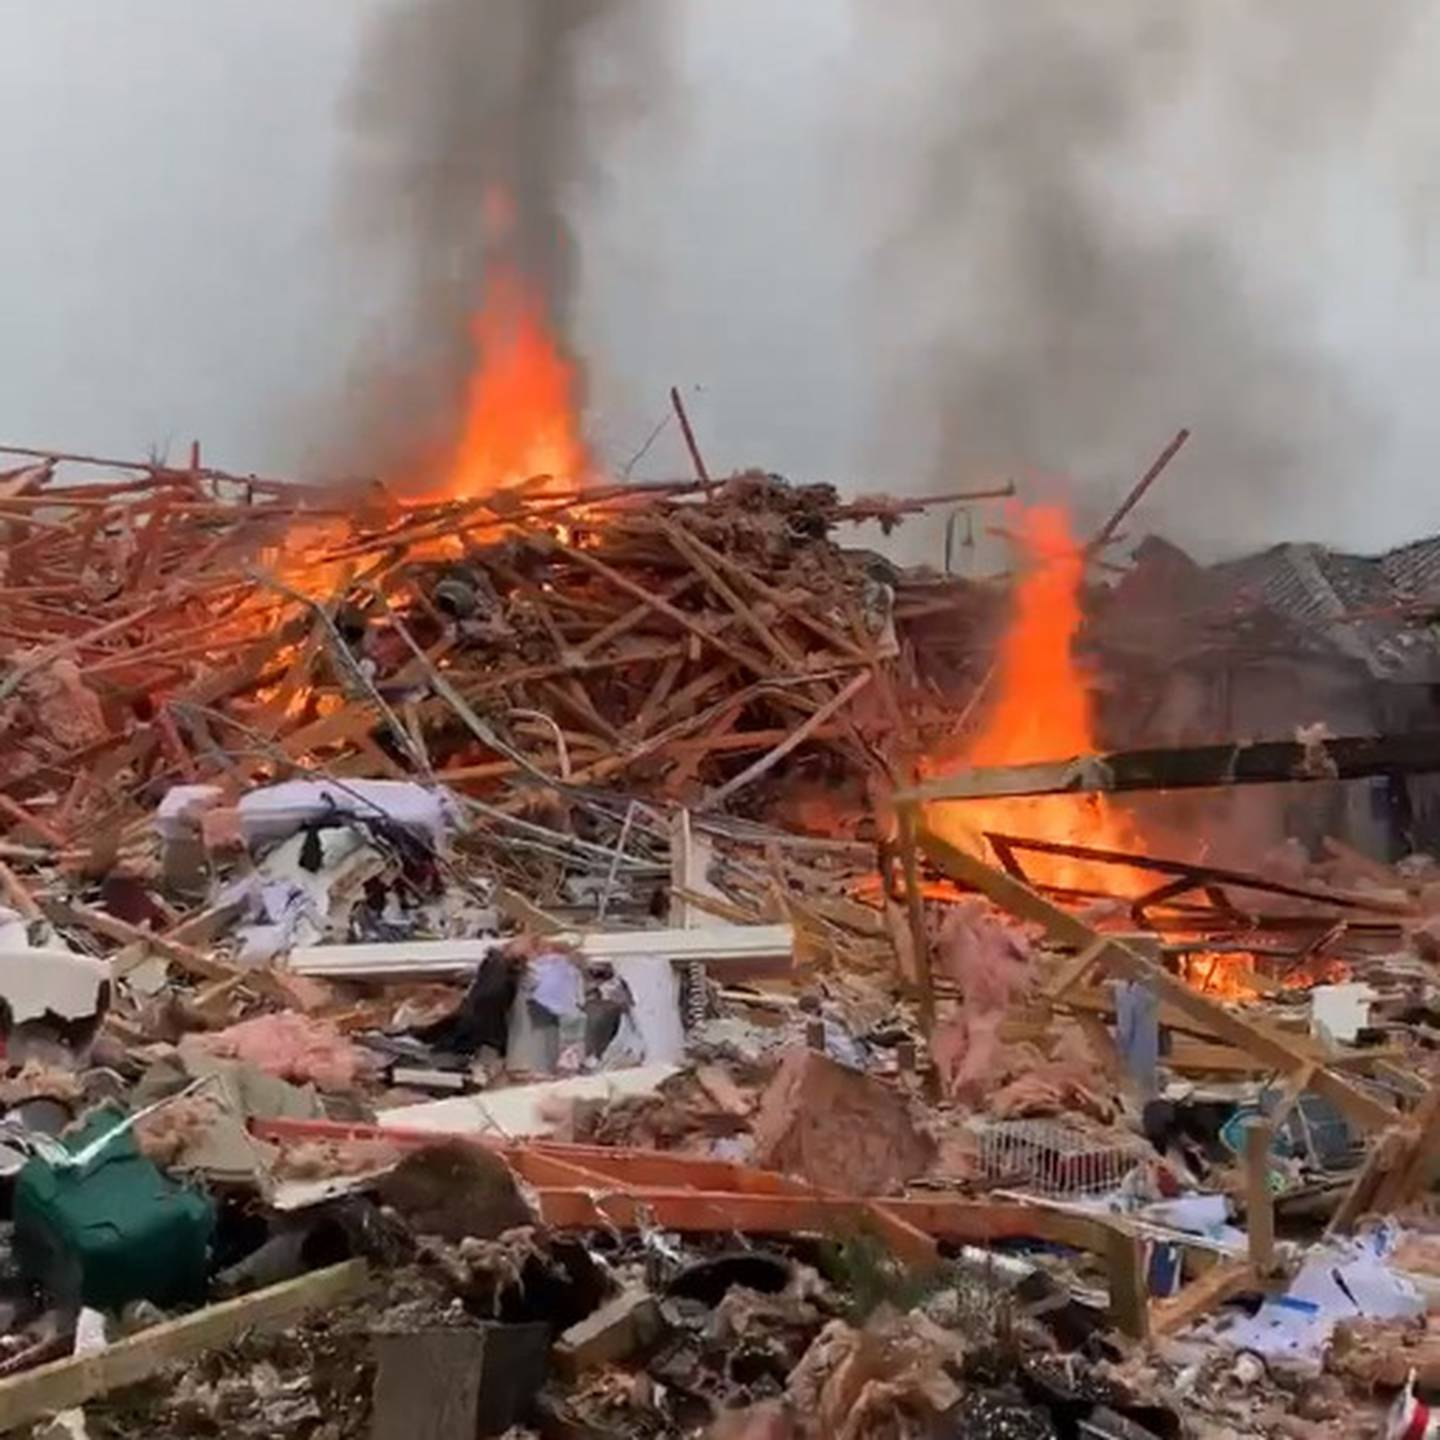 The blast destroyed one house and injured several people. Photo: James Looyer via NZ Herald